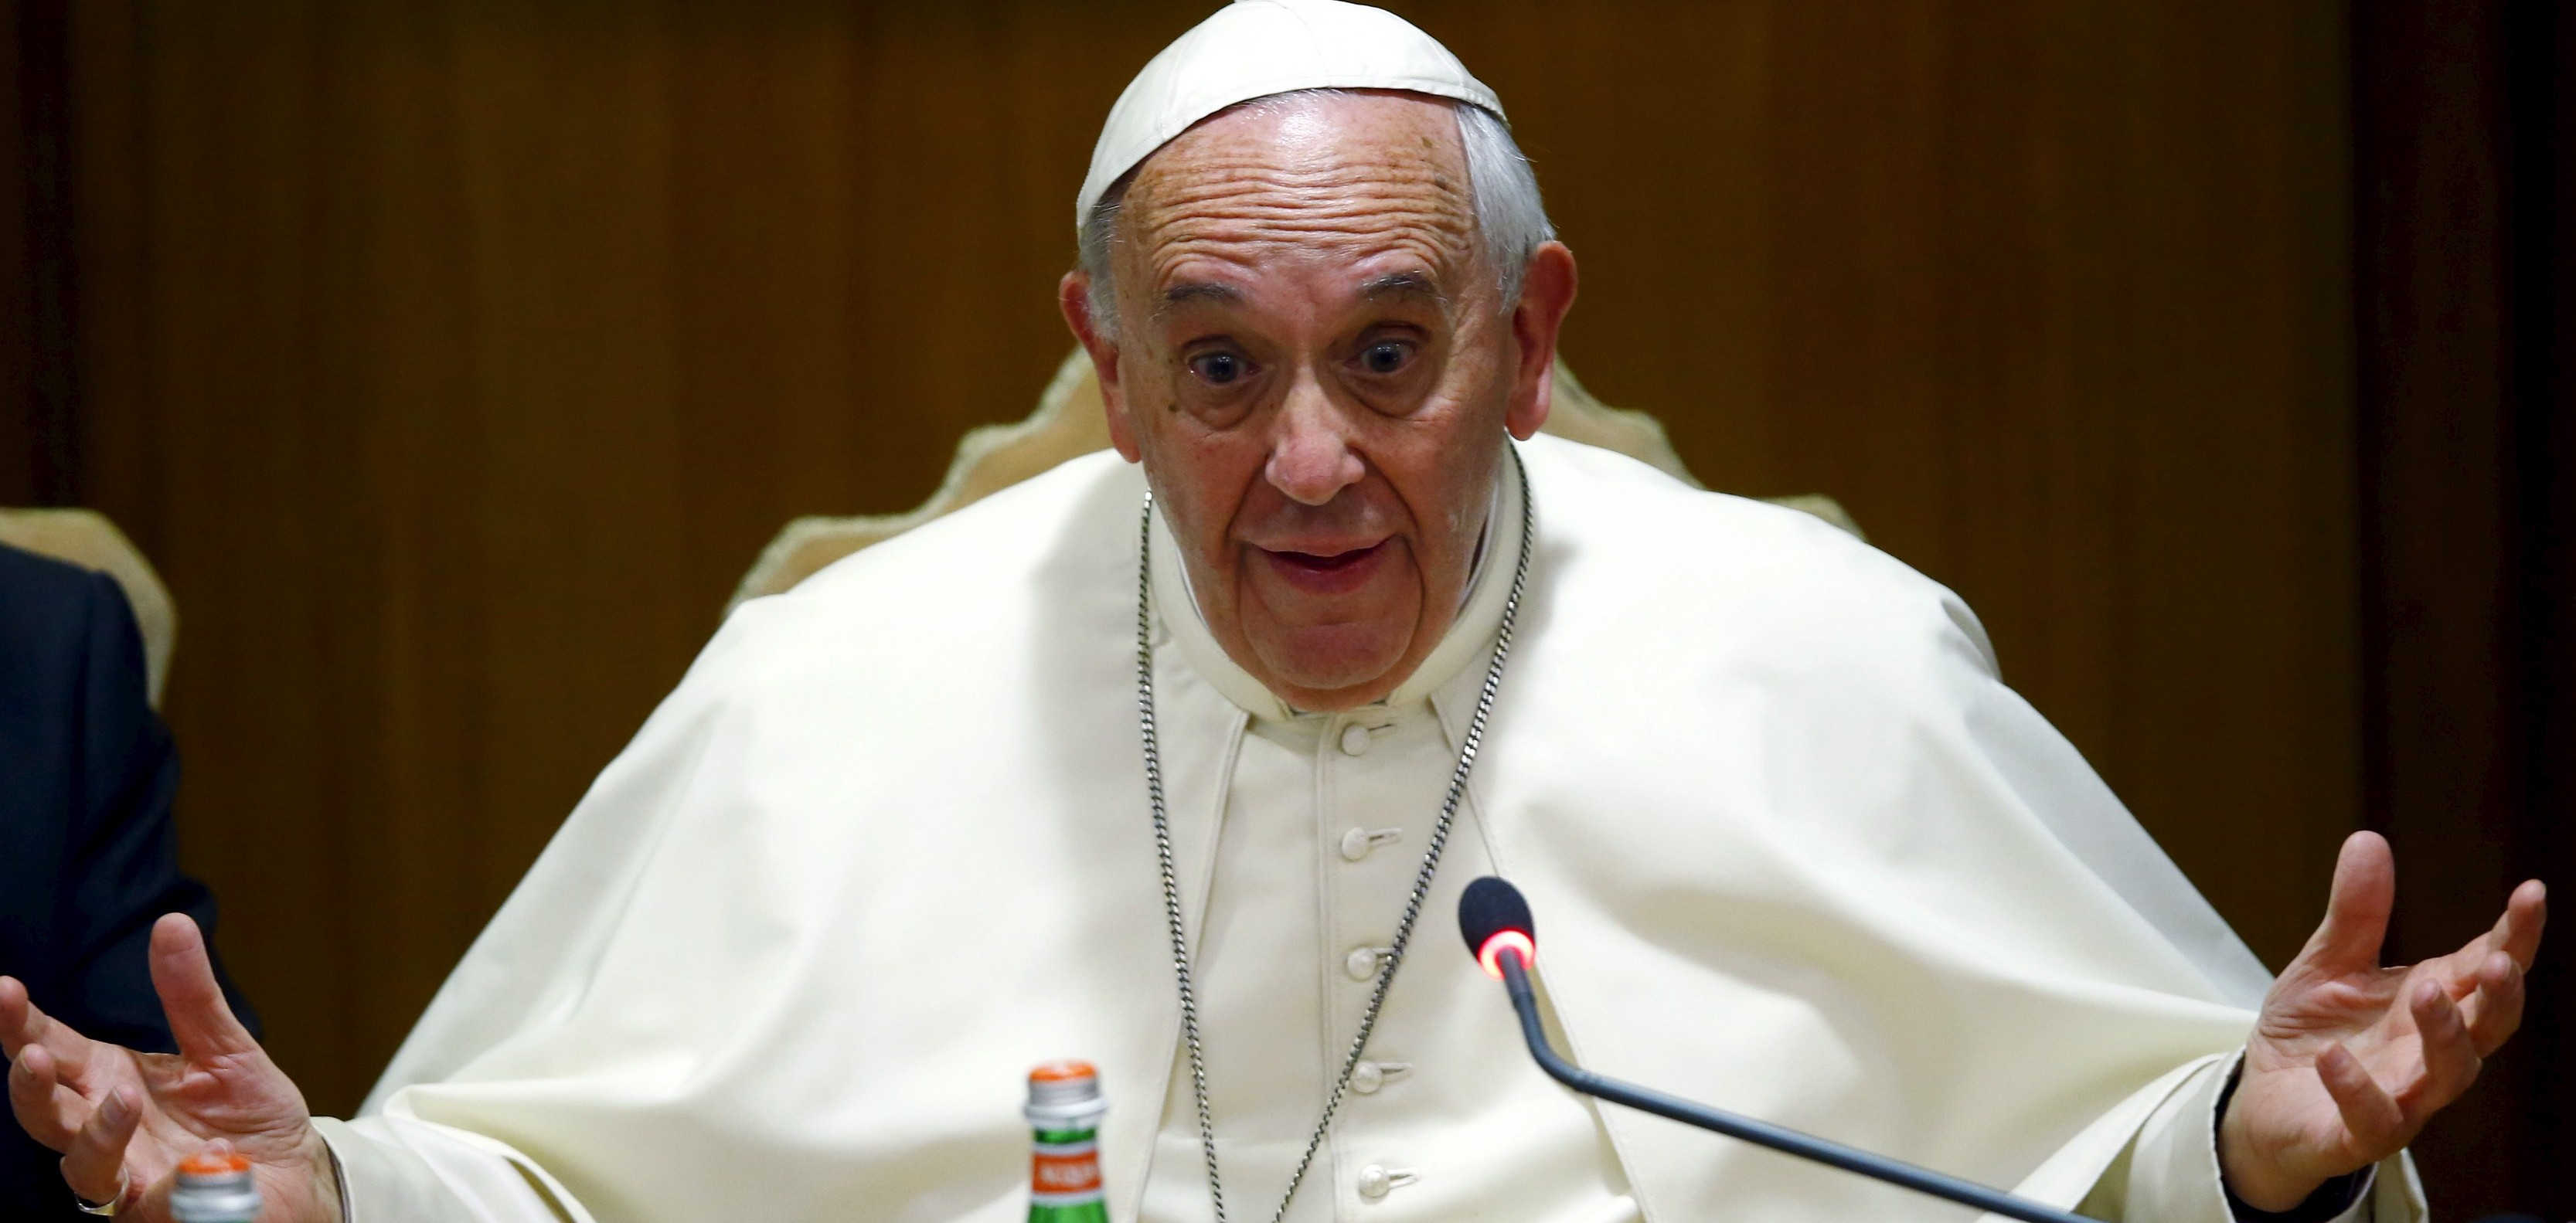 """Pope Francis gestures as he speaks during the """"Modern Slavery and Climate Change"""" conference at the Vatican July 21, 2015. Pope Francis on Tuesday urged the United Nations to take a """"very strong stand"""" on climate change at a landmark summit this year in Paris on global warming. The pope spoke at a Vatican-hosted conference of mayors and governors from major world cities who signed a declaration urging global leaders to take bold action at the U.N. summit, saying it may be the last chance to tackle human-induced global warming. REUTERS/Tony Gentile  - RTX1L91Q"""